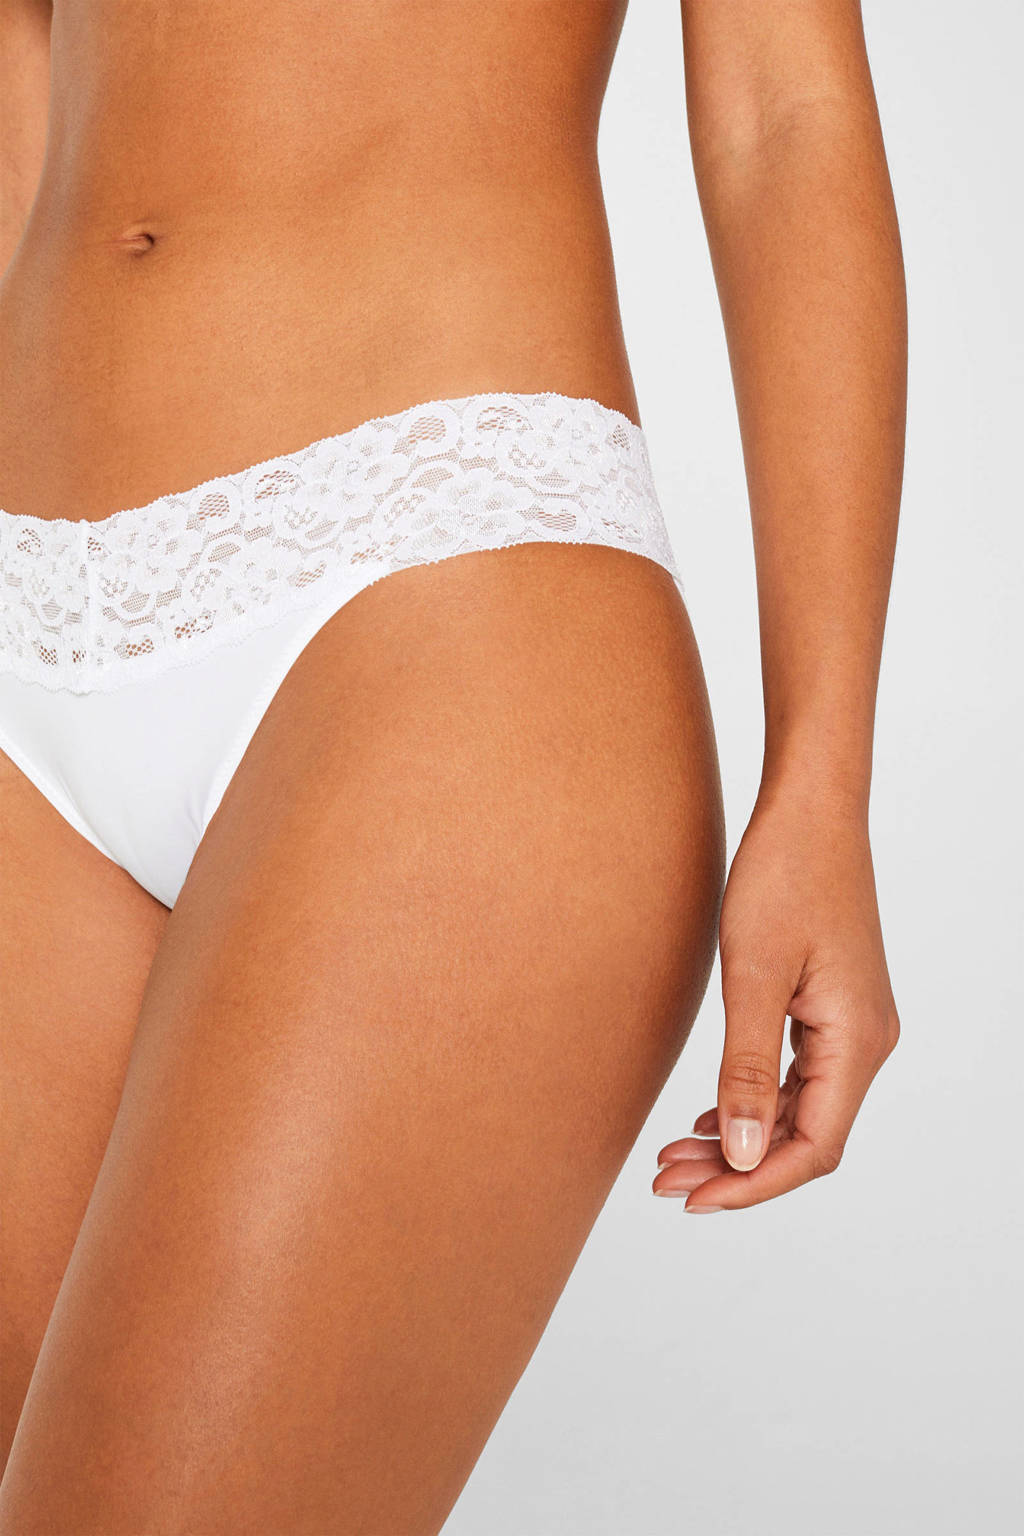 ESPRIT slip Daily Lace wit (set van 2), Wit